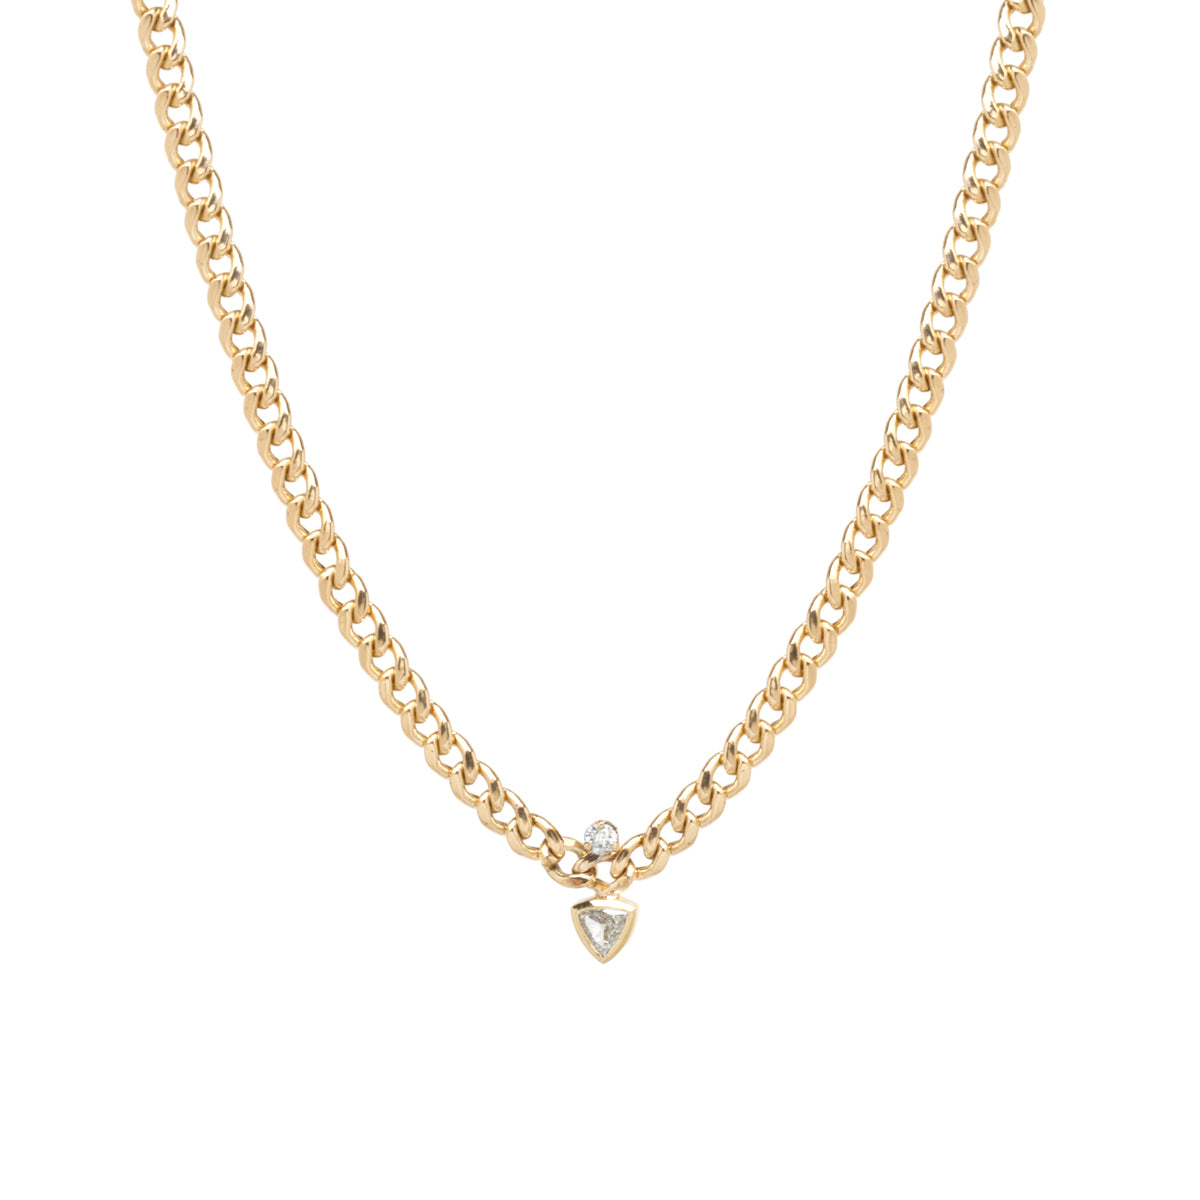 14k medium curb chain necklace with prong and trillion diamonds